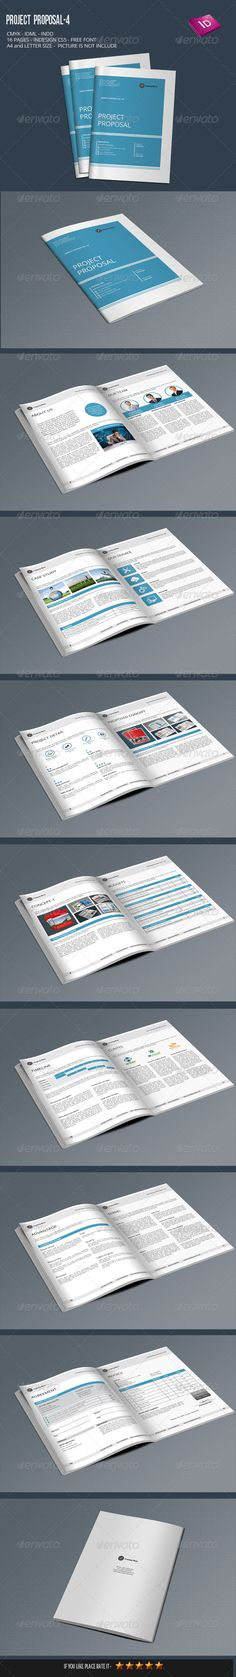 Website Project Proposal Templates Creative, Project proposal - project proposal